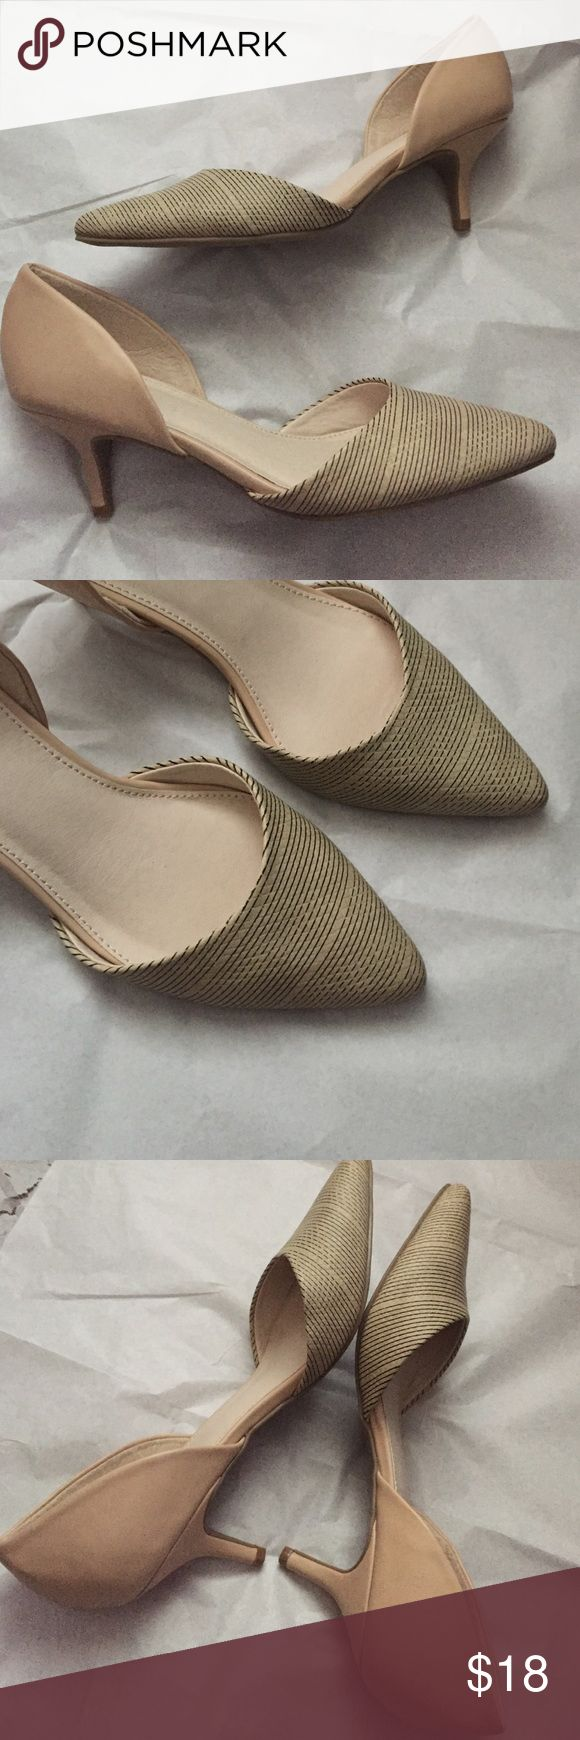 D Orsay pumps! NWOT Classy D Orsay pumps! So great! Cream with black stripes on the front! Size 7.5  new without tags! Never worn! Matches everything almost! 2.5 inch heel! Cato Shoes Heels